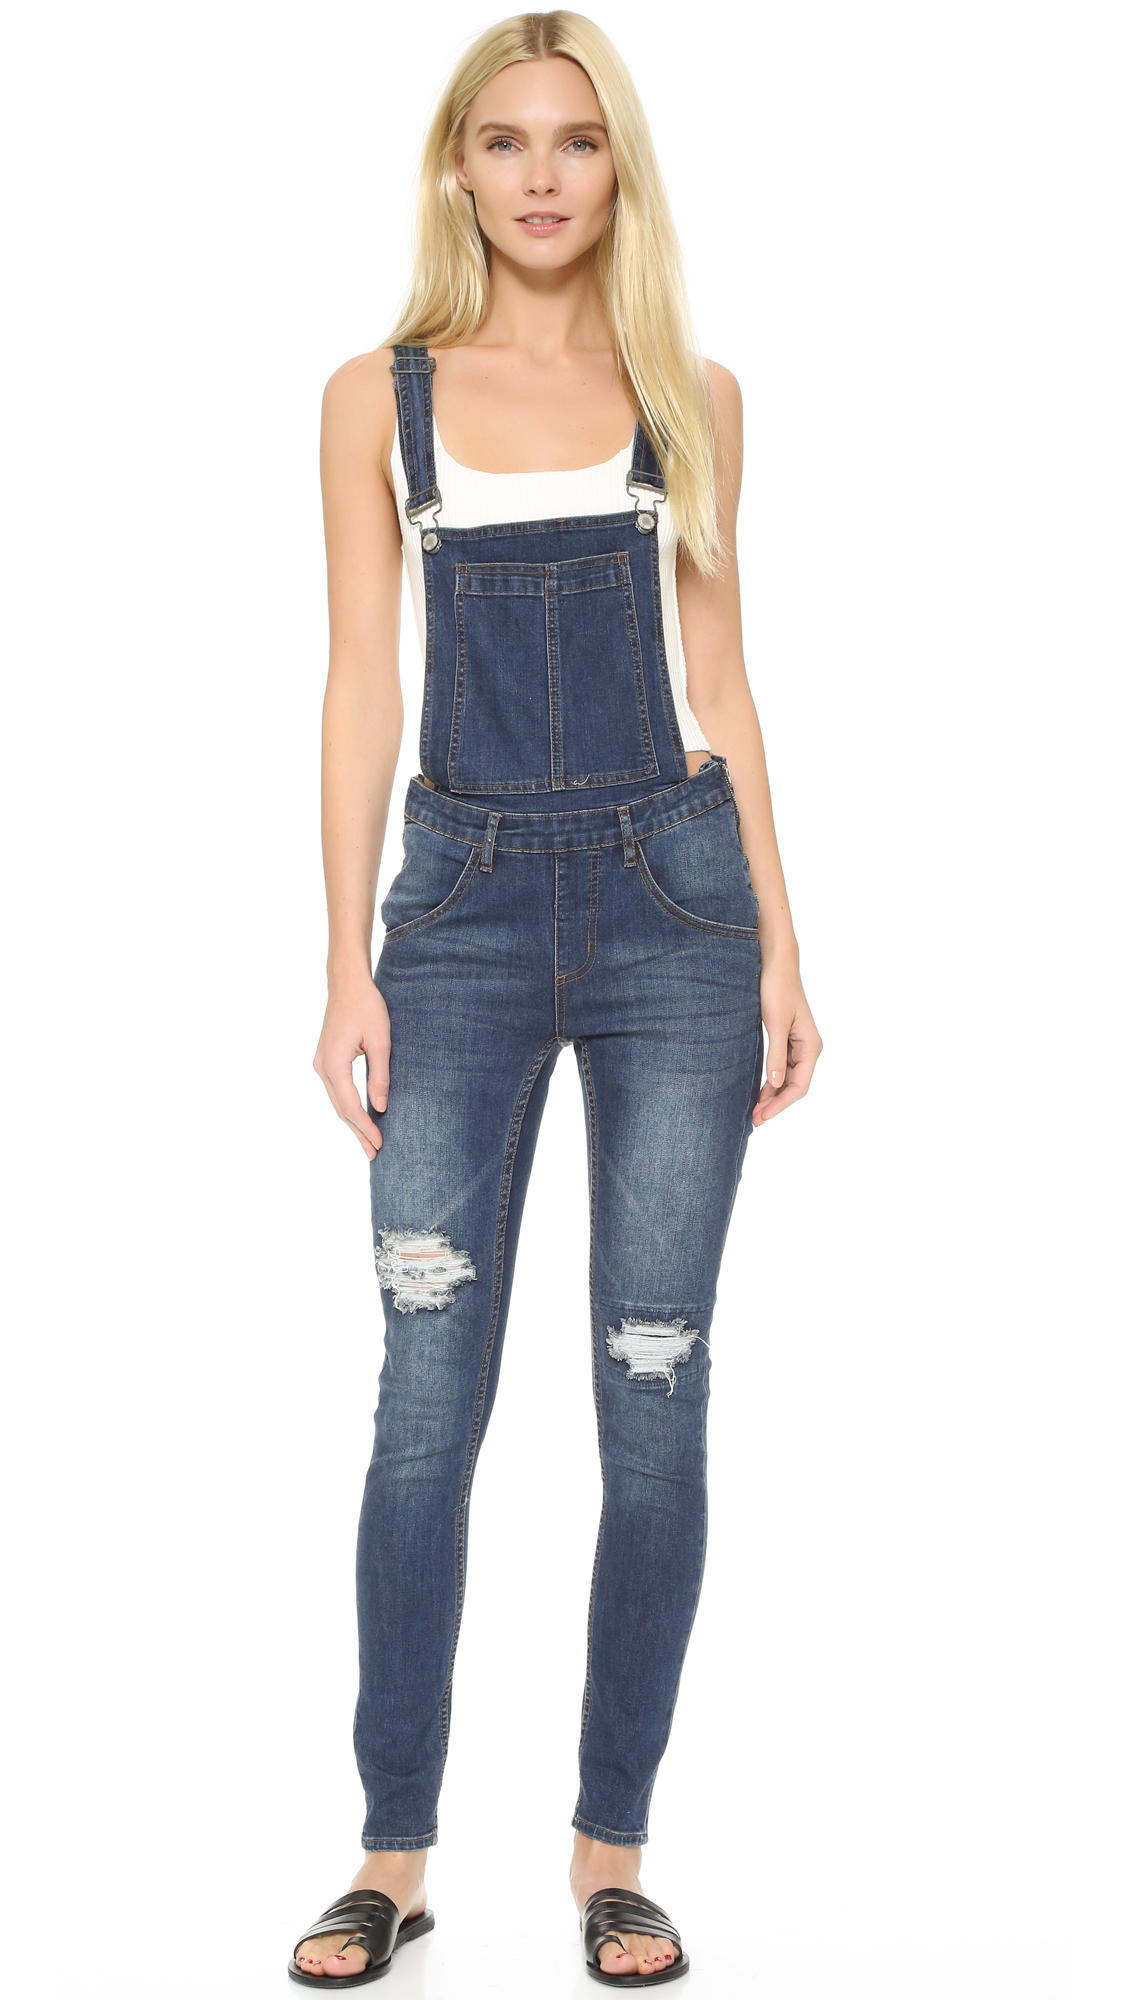 Lyst - Cheap Monday Carbon Blue Dungaree Overalls in Blue